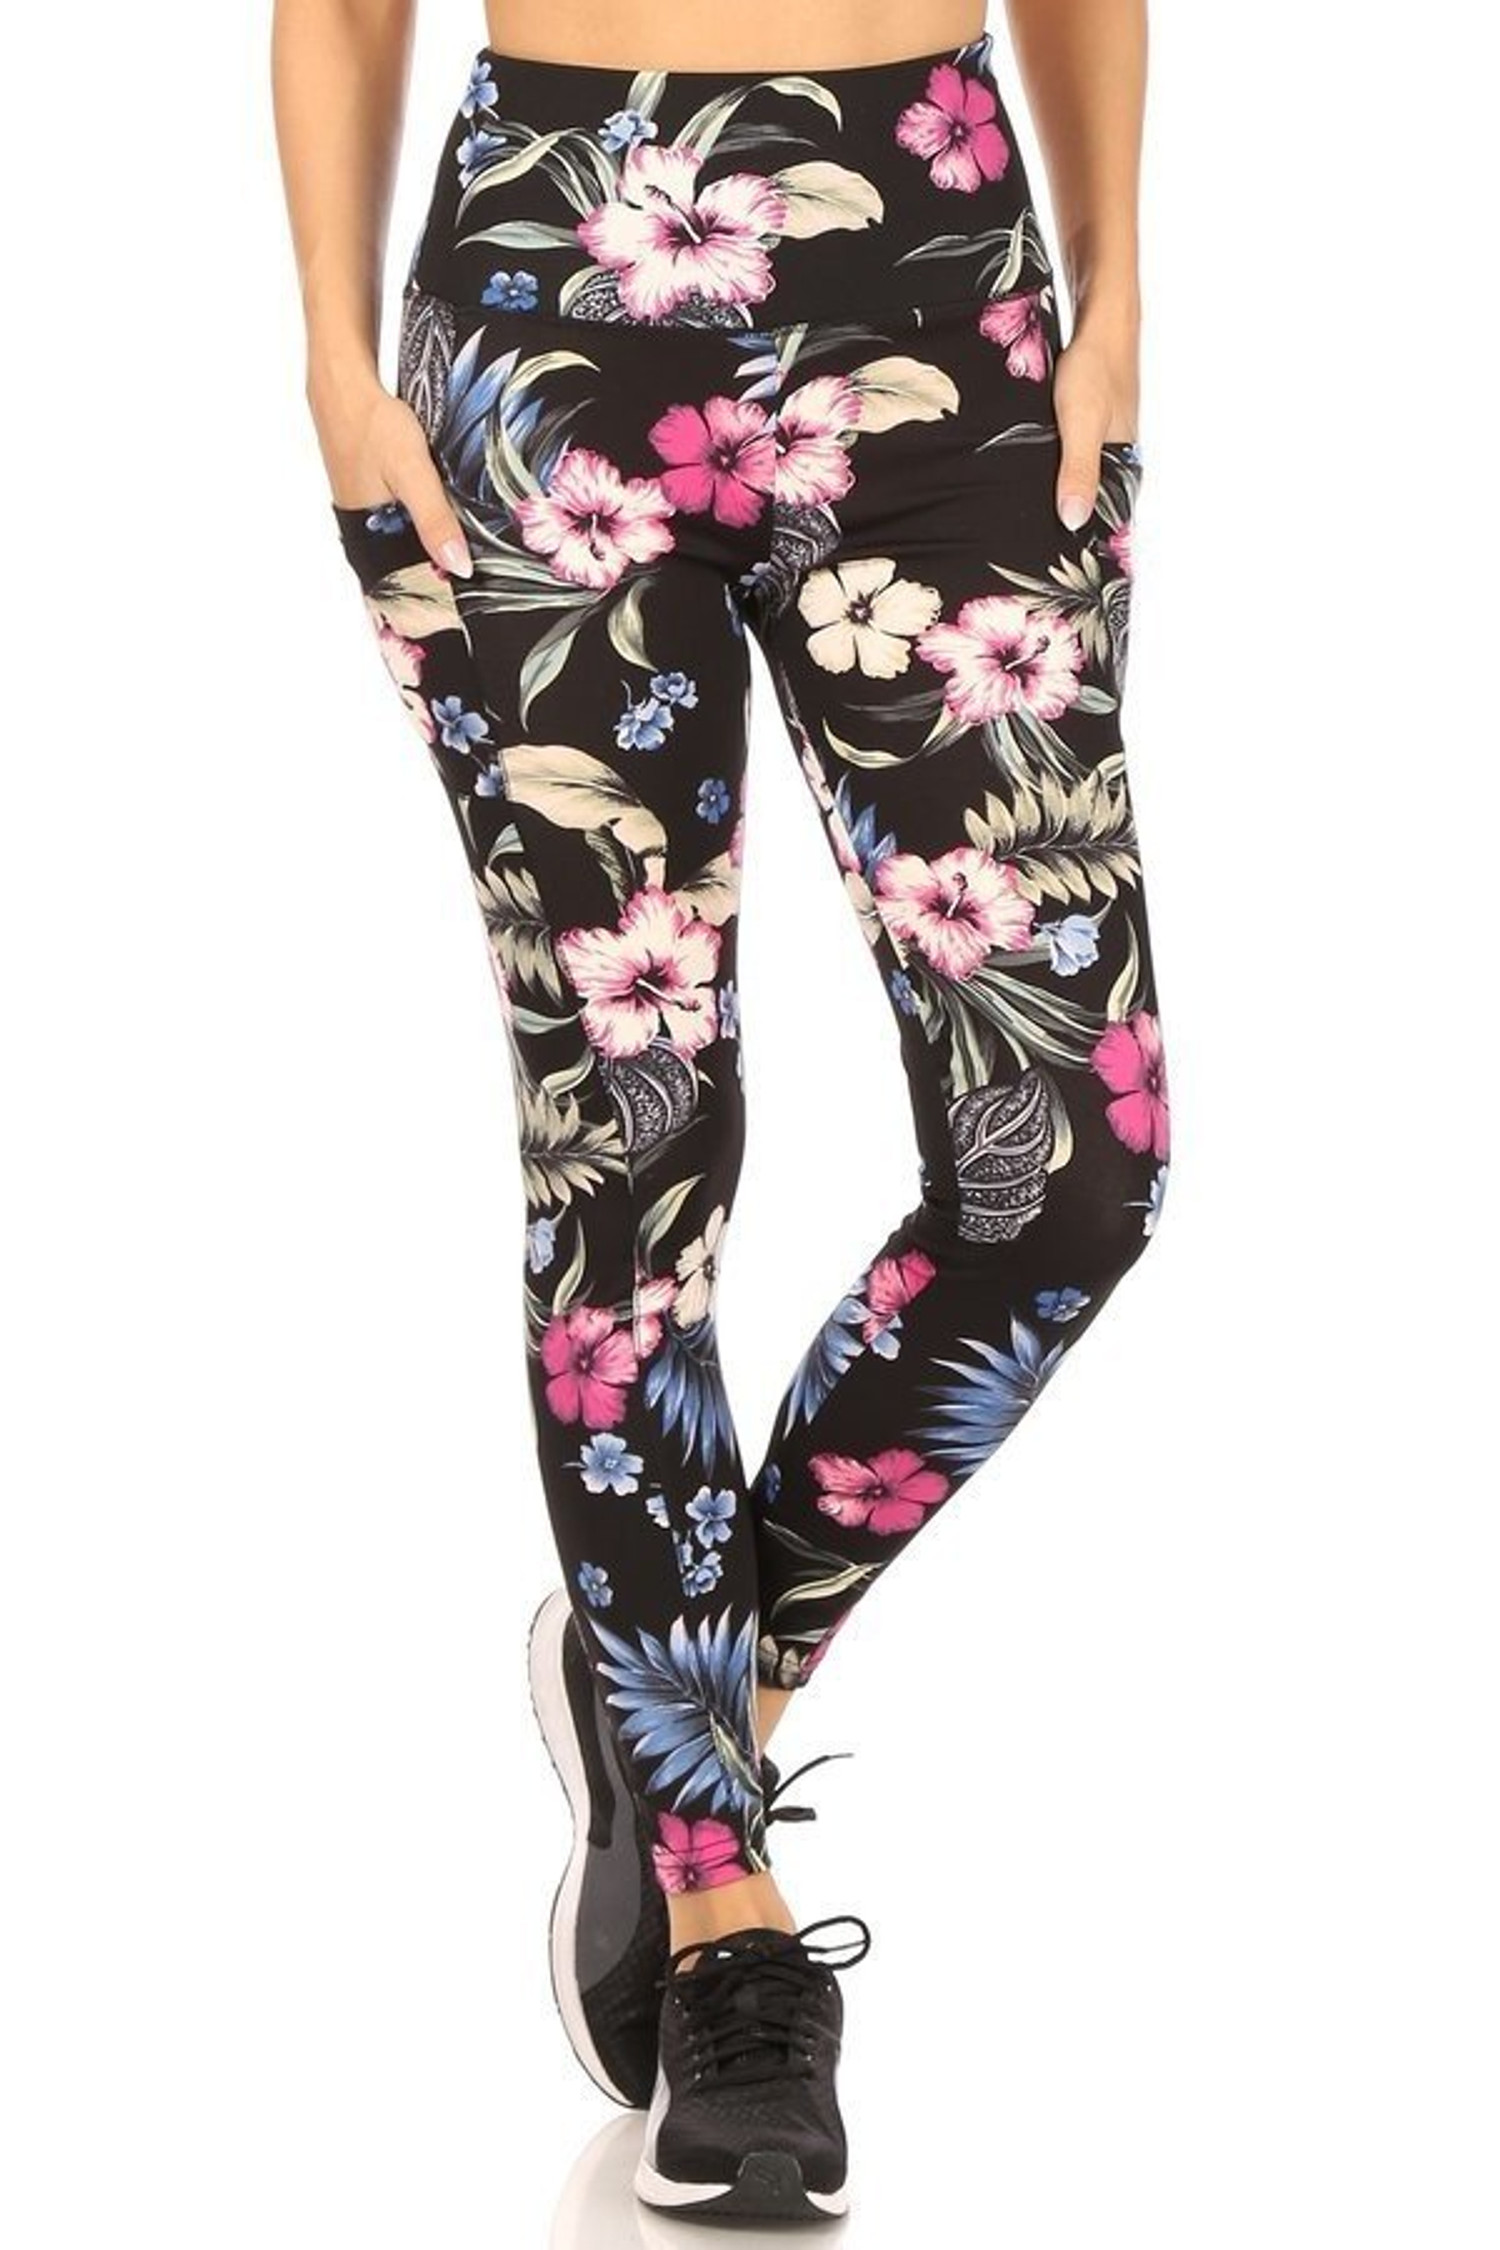 Front side of High Waisted Graceful Floral Sports Leggings with Side Pockets